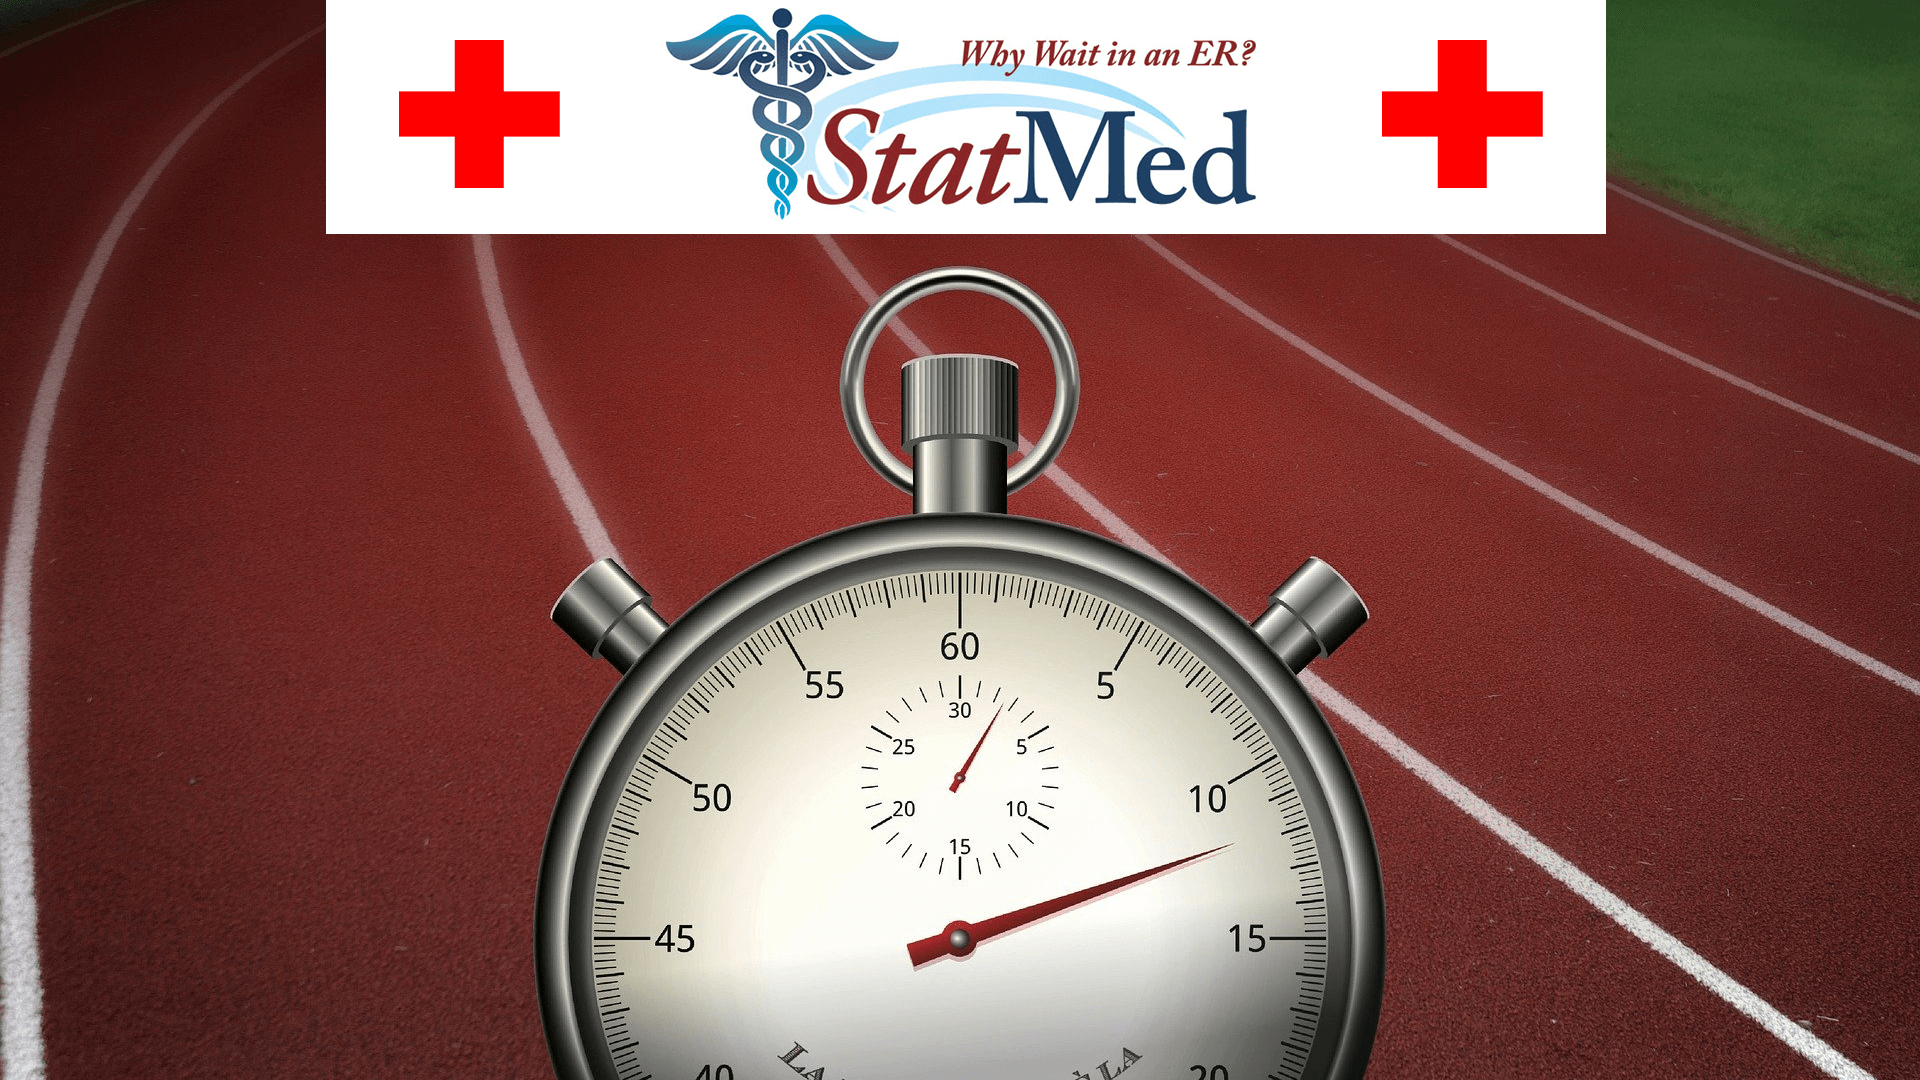 How To Expedite Your Urgent Care Visit to StatMed Urgent Care Center